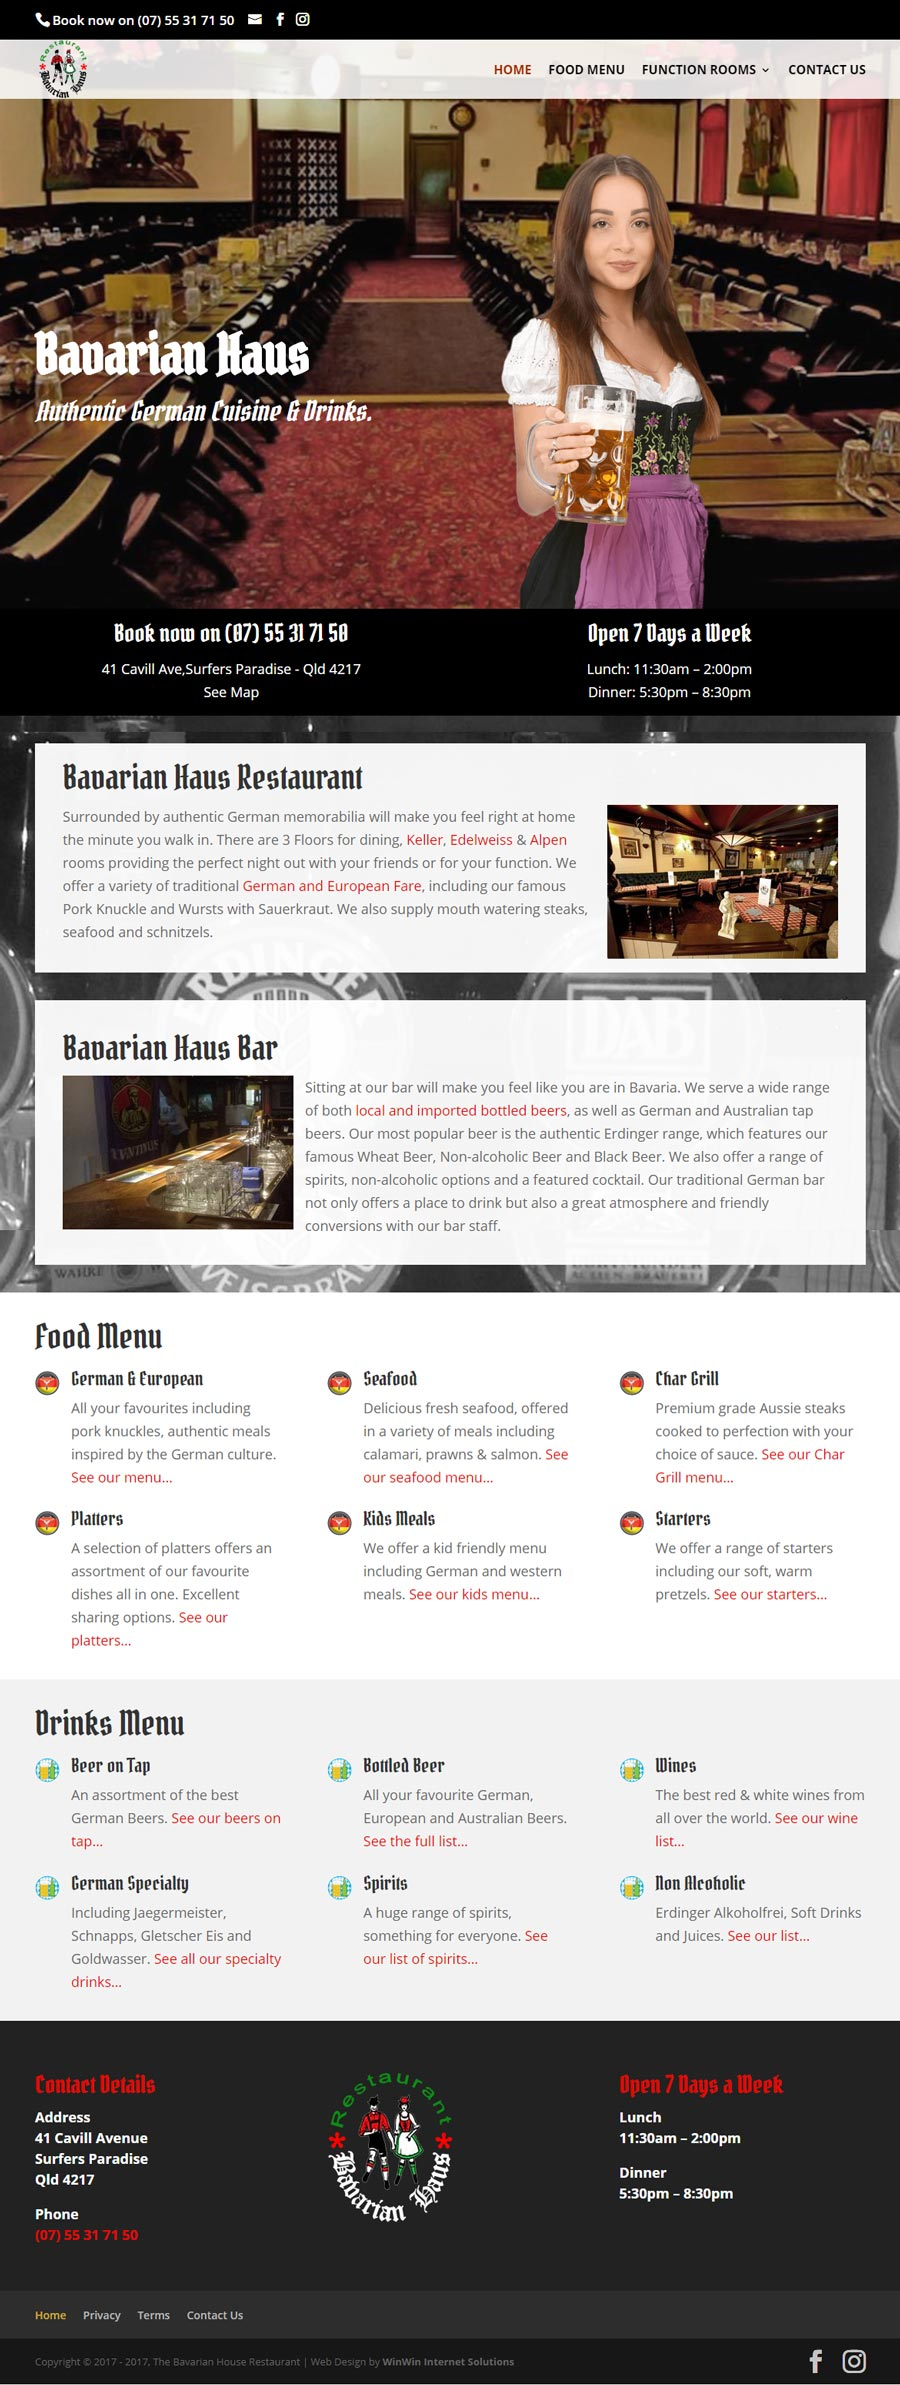 Bavarian Haus Website Build